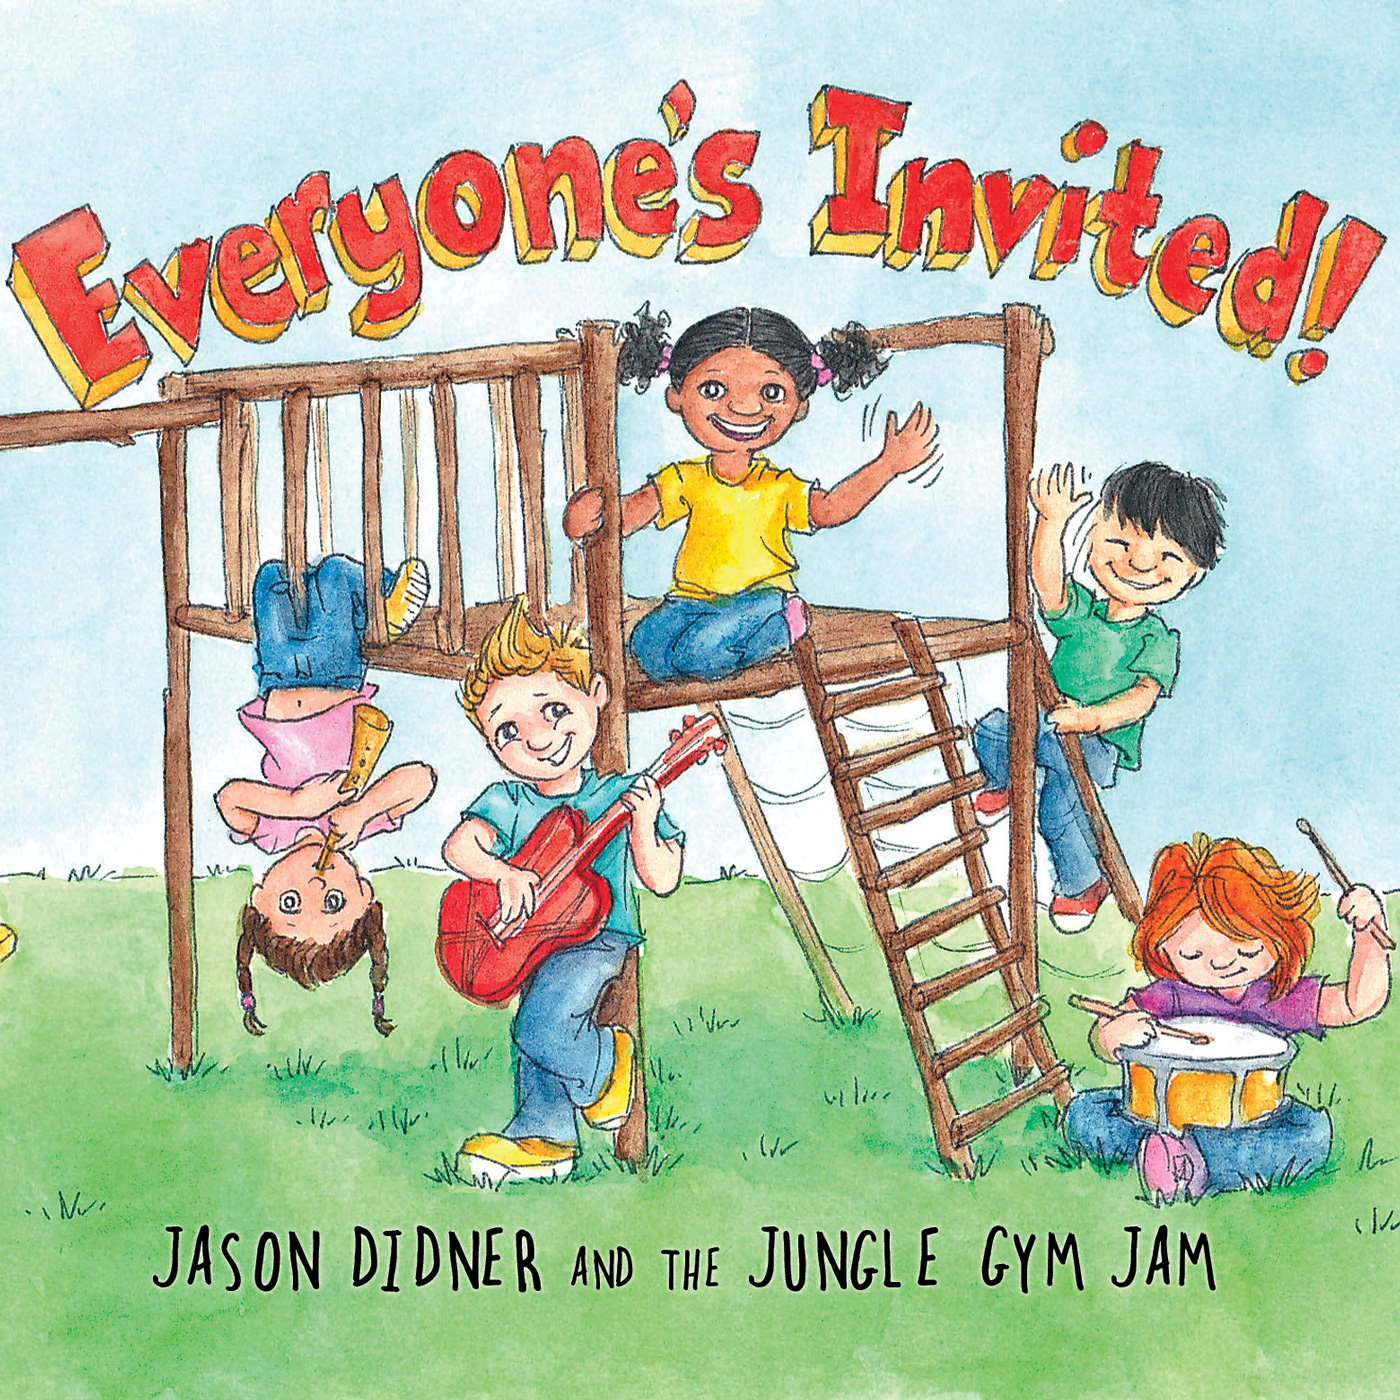 Everyone's Invited! album cover artwork - Jason Didner and the Jungle Gym Jam - illustrated by Melissa Bailey